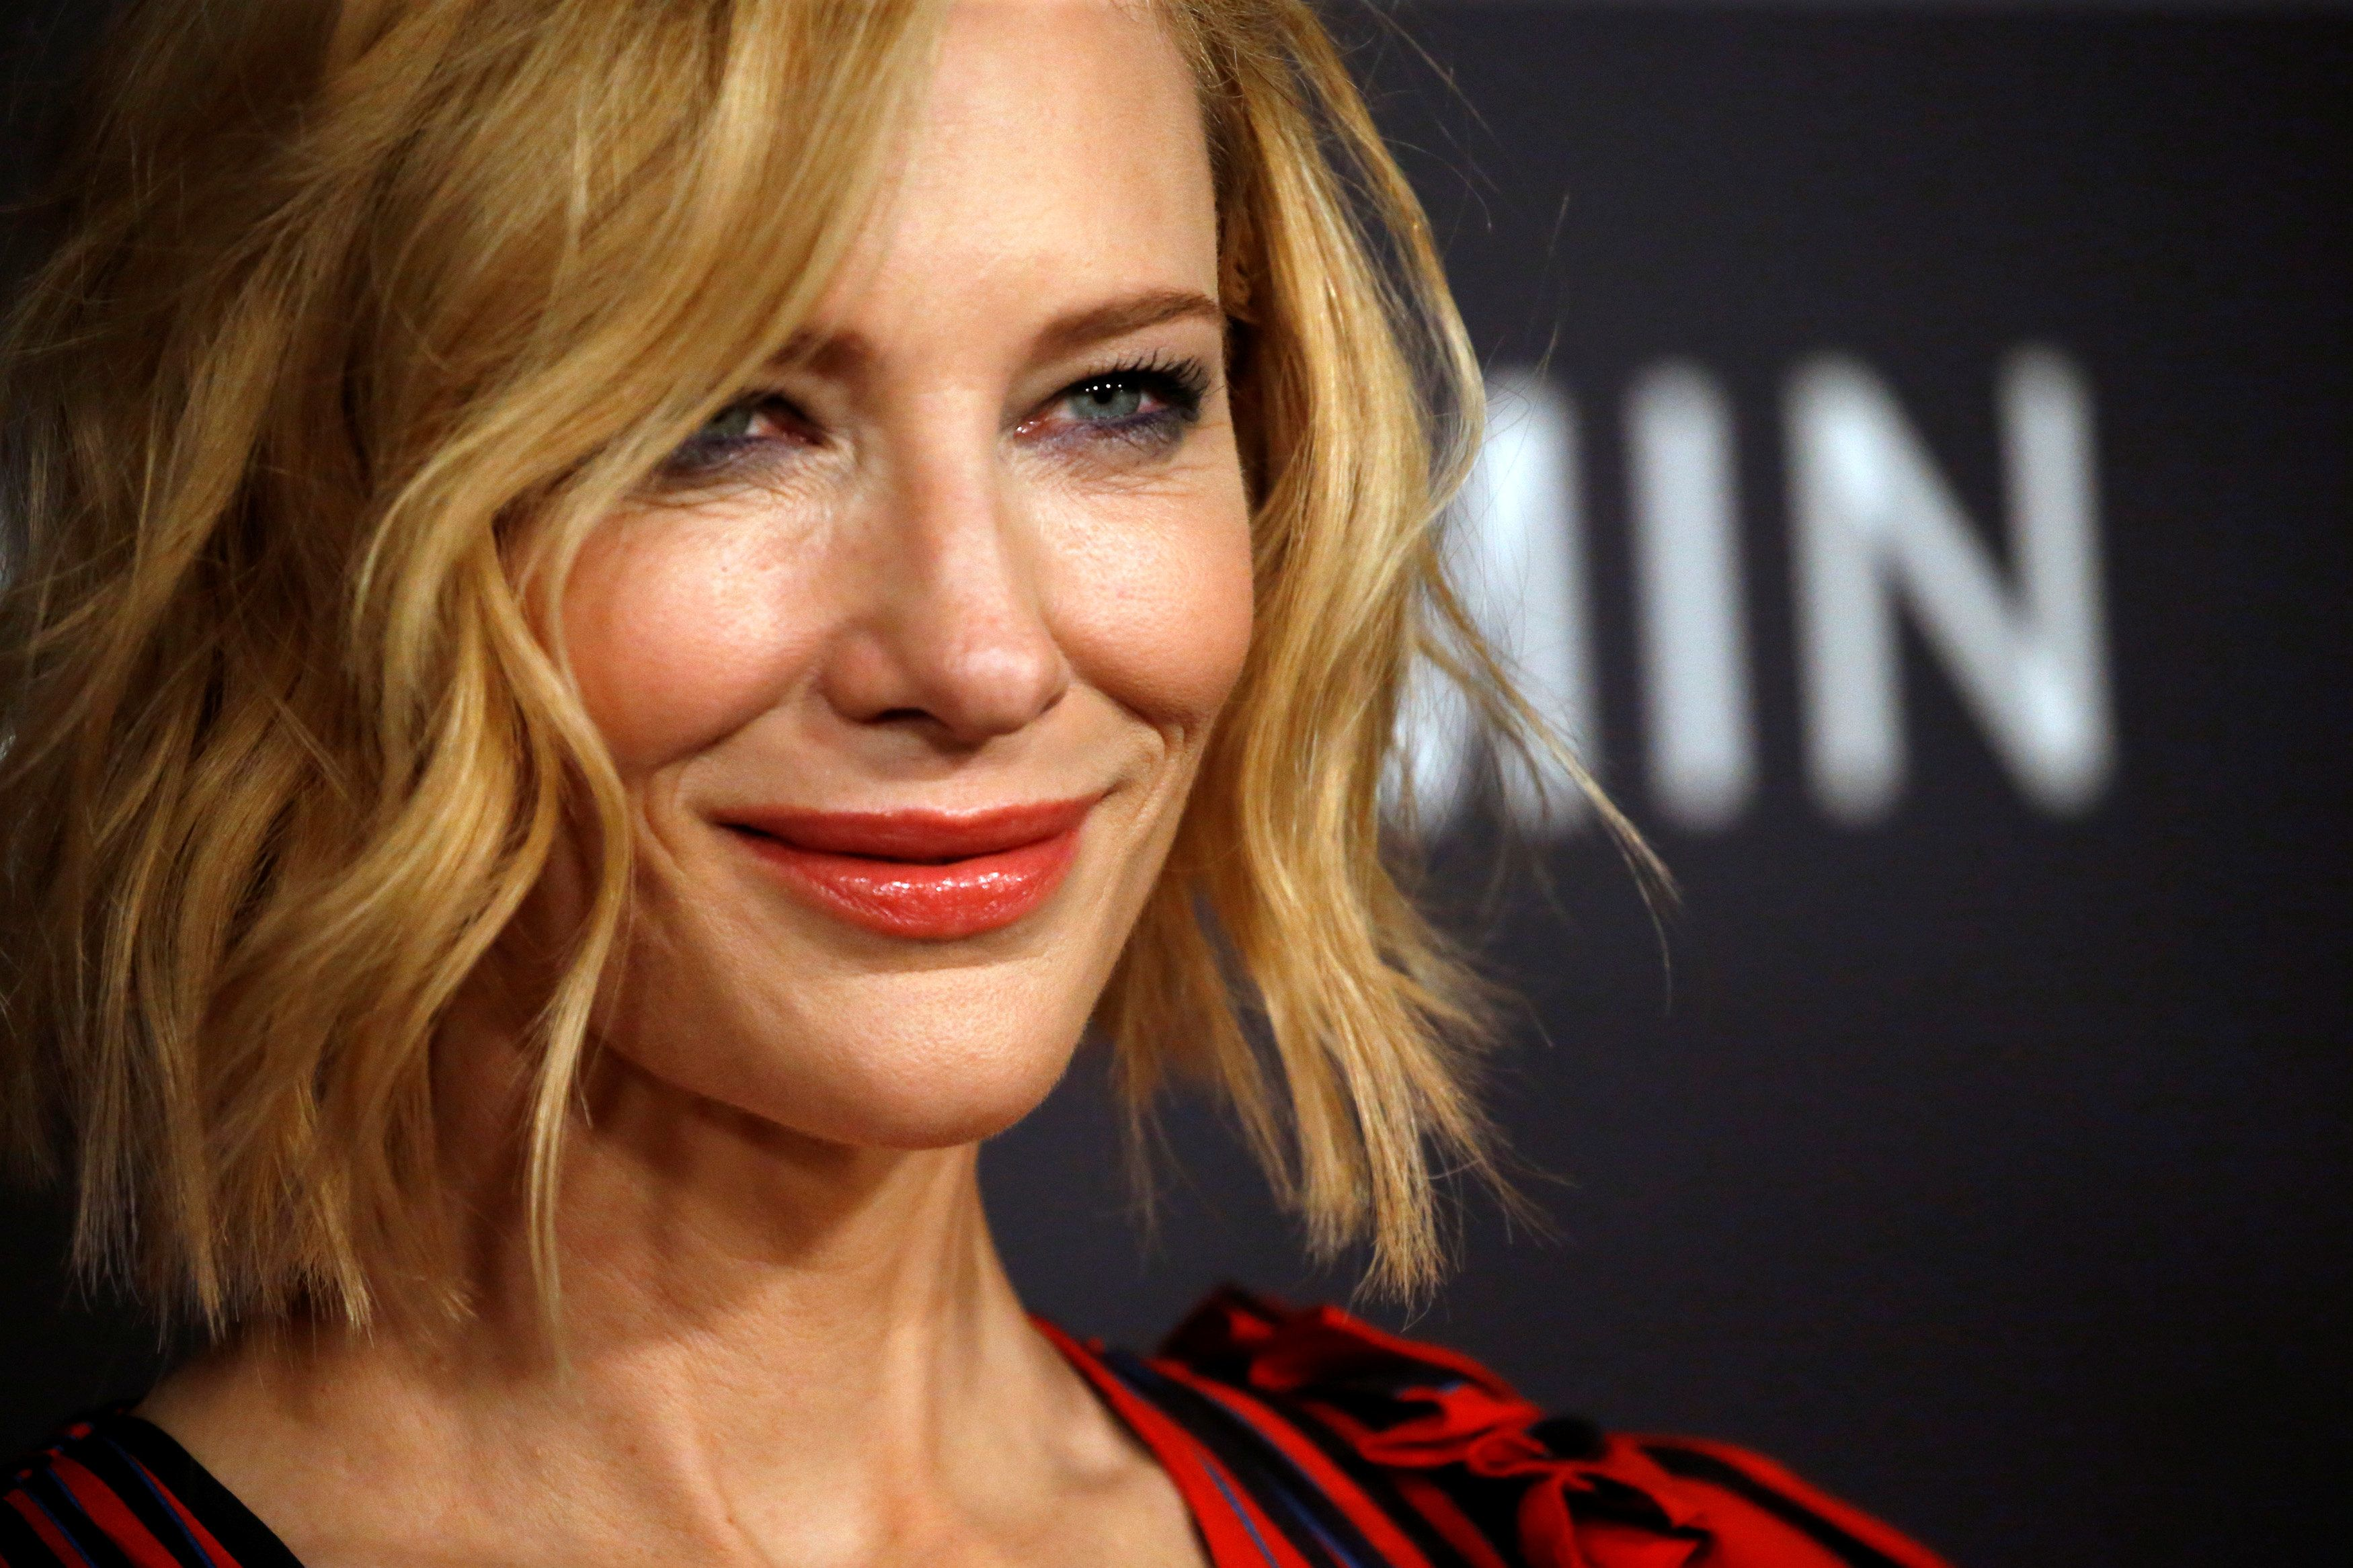 Actor Cate Blanchett poses at the third annual InStyle Awards in Los Angeles, California, U.S., October 23, 2017. REUTERS/Mario Anzuoni